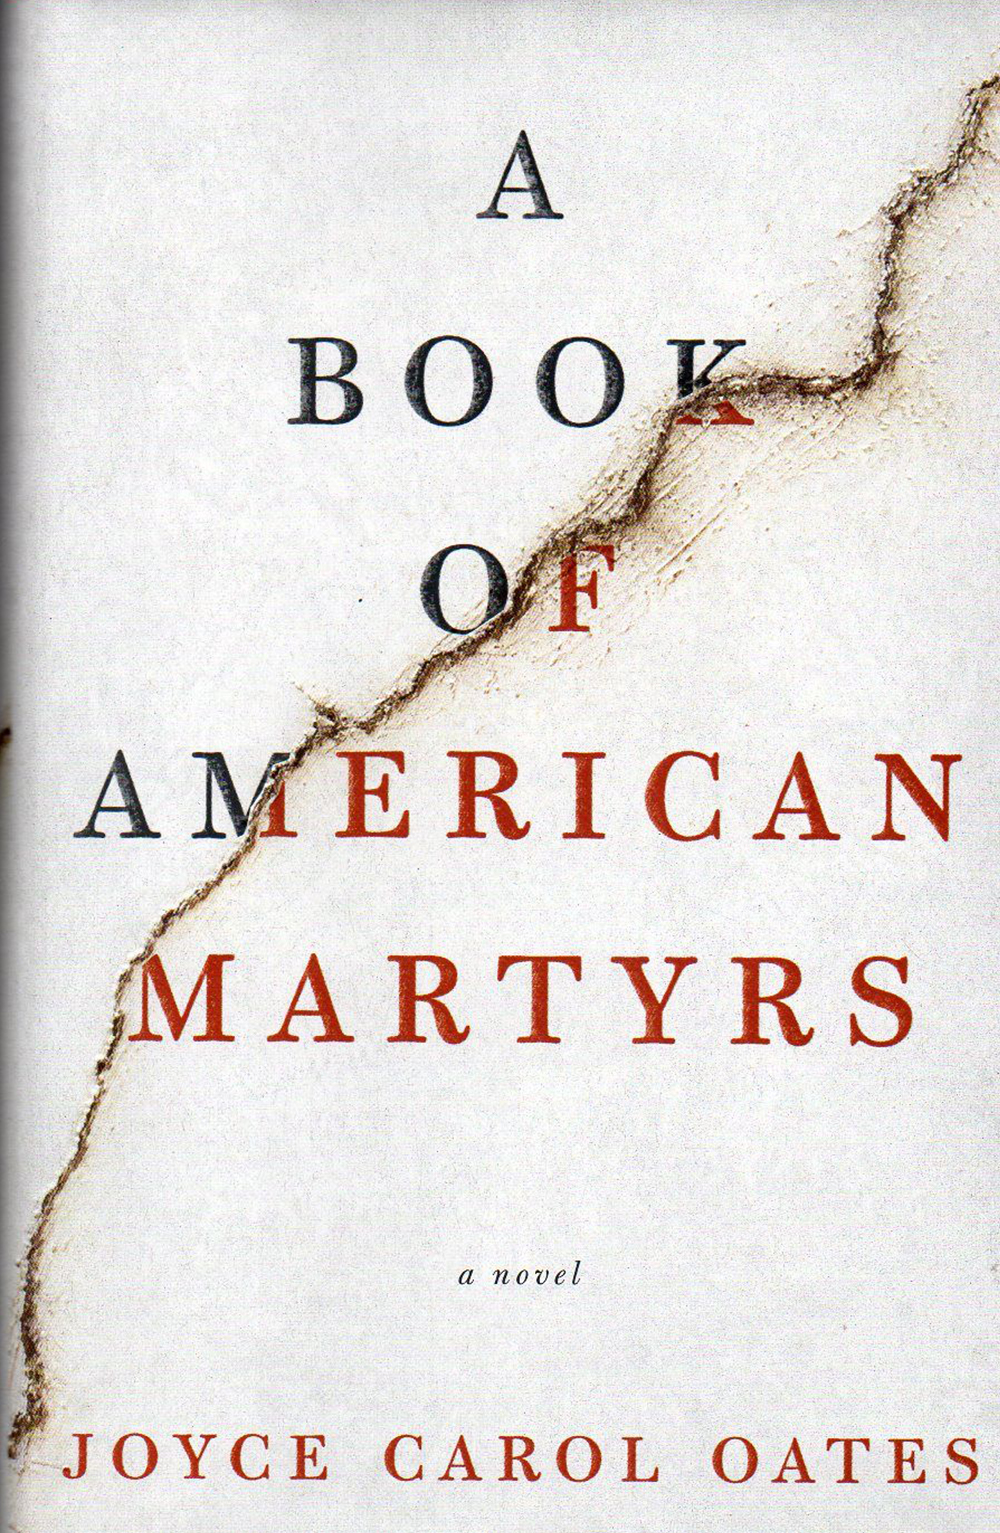 02 A Book of American Martyrs